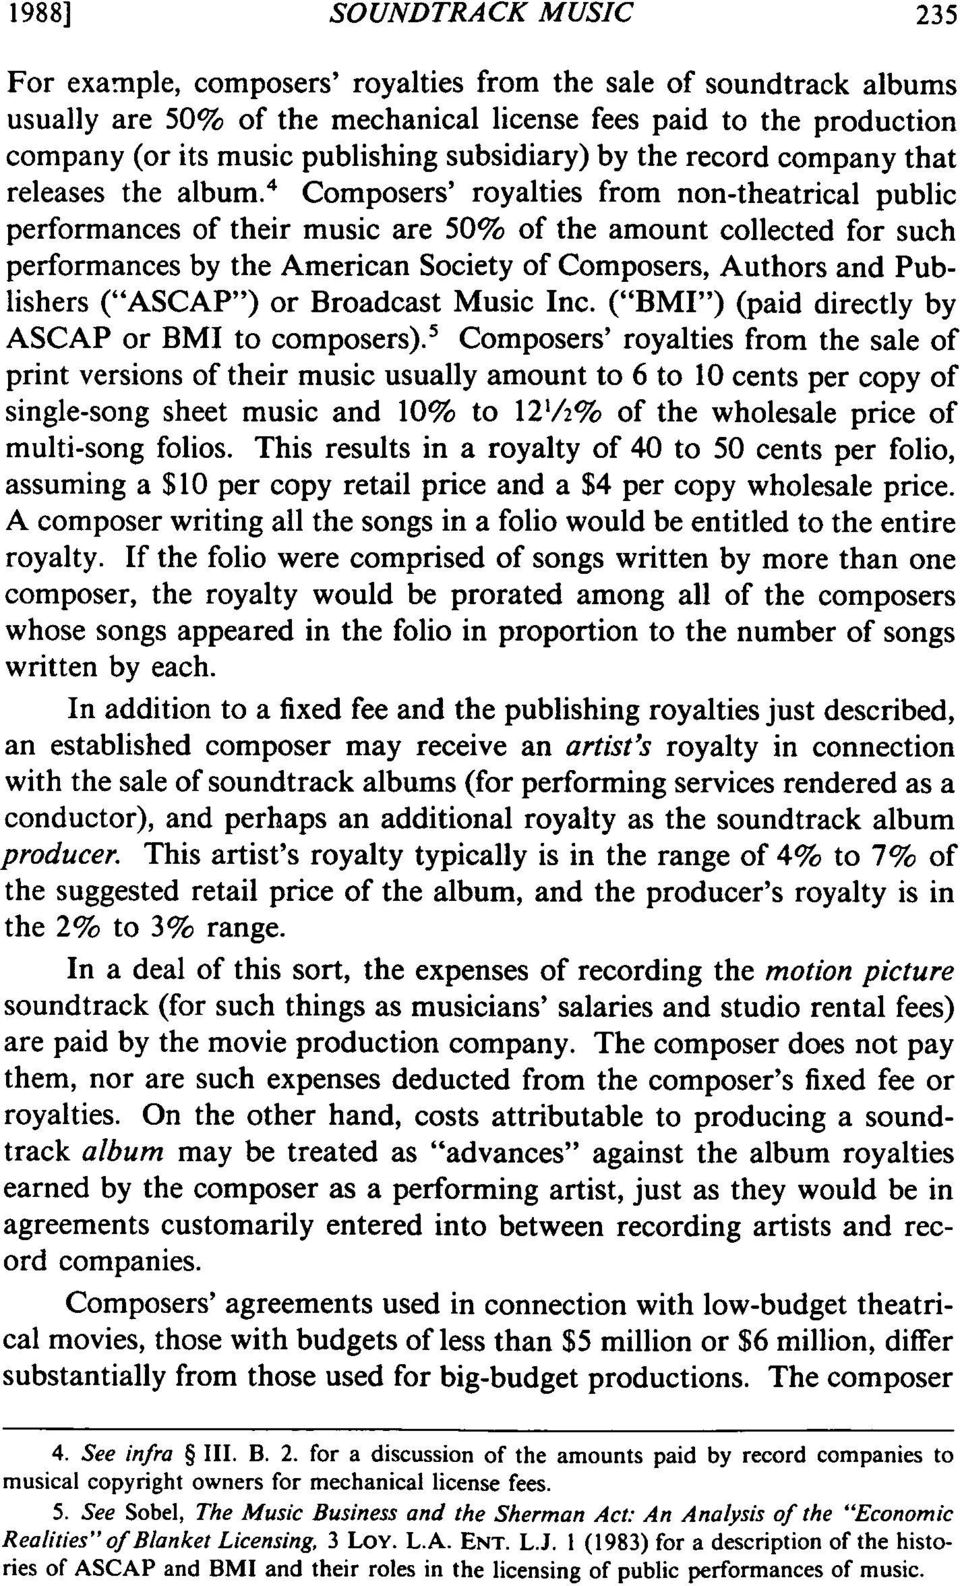 4 Composers' royalties from non-theatrical public performances of their music are 50% of the amount collected for such performances by the American Society of Composers, Authors and Publishers